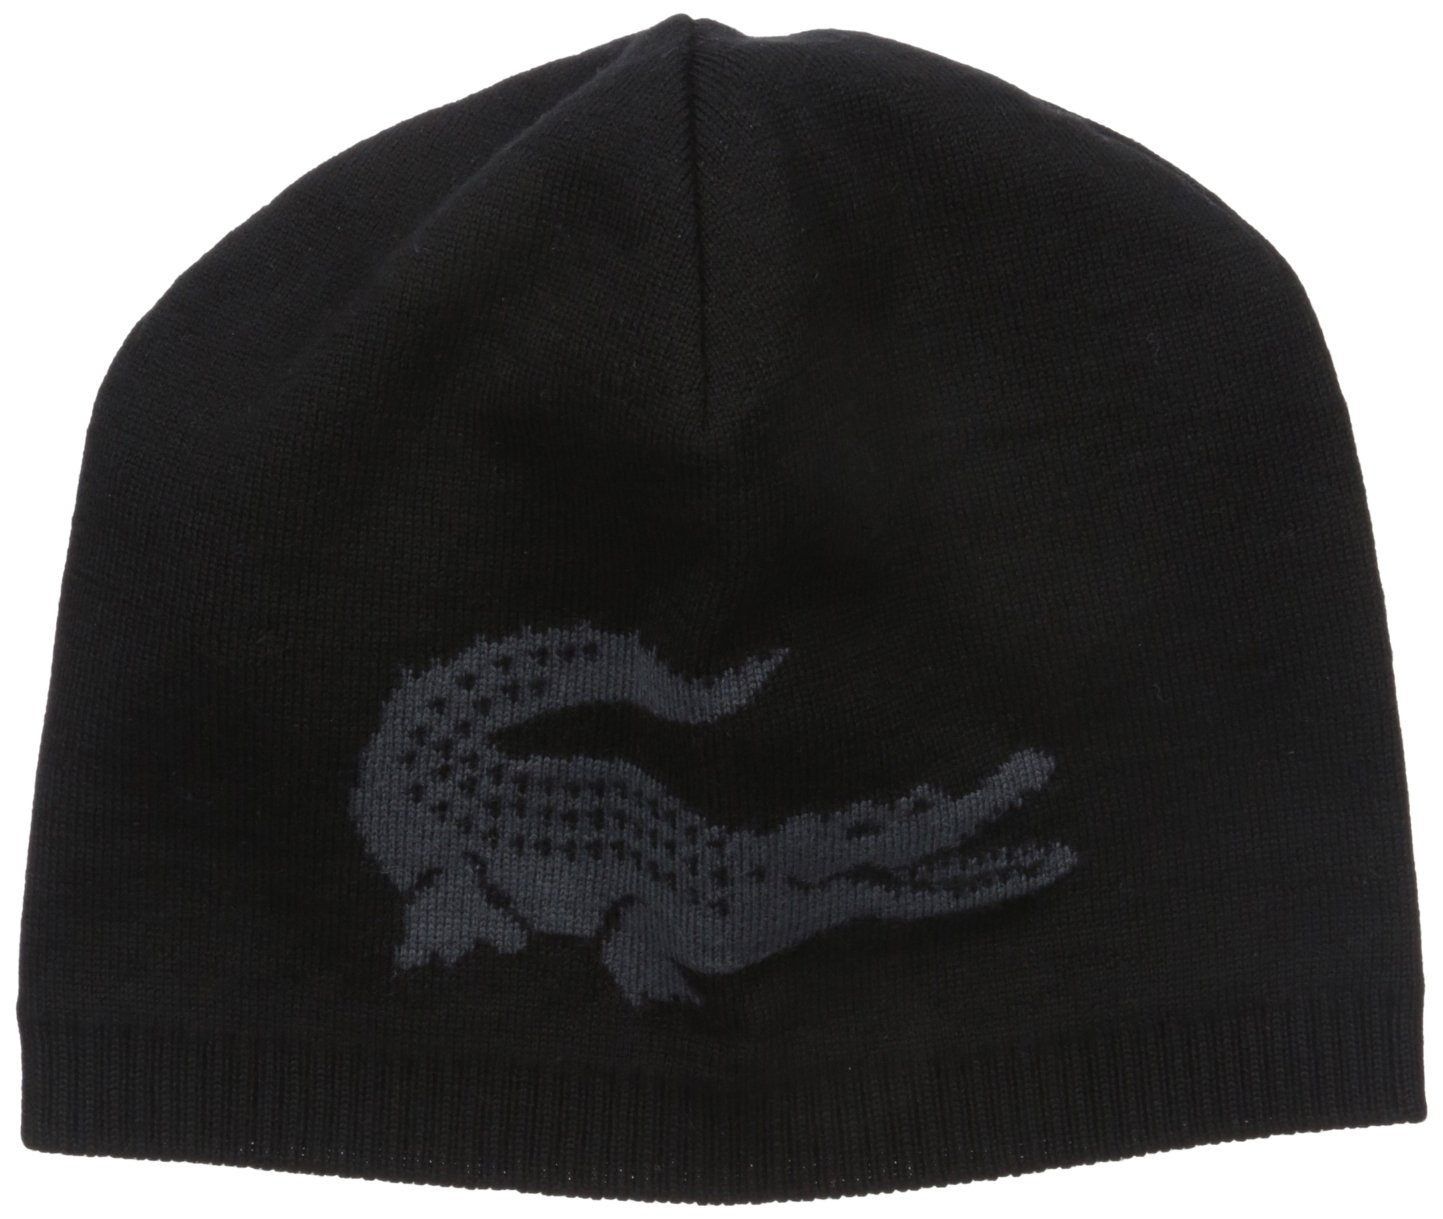 Lacoste Men's Big Crocodile Jacquard Reversible Wool Beanie, Black/Graphite, One Size